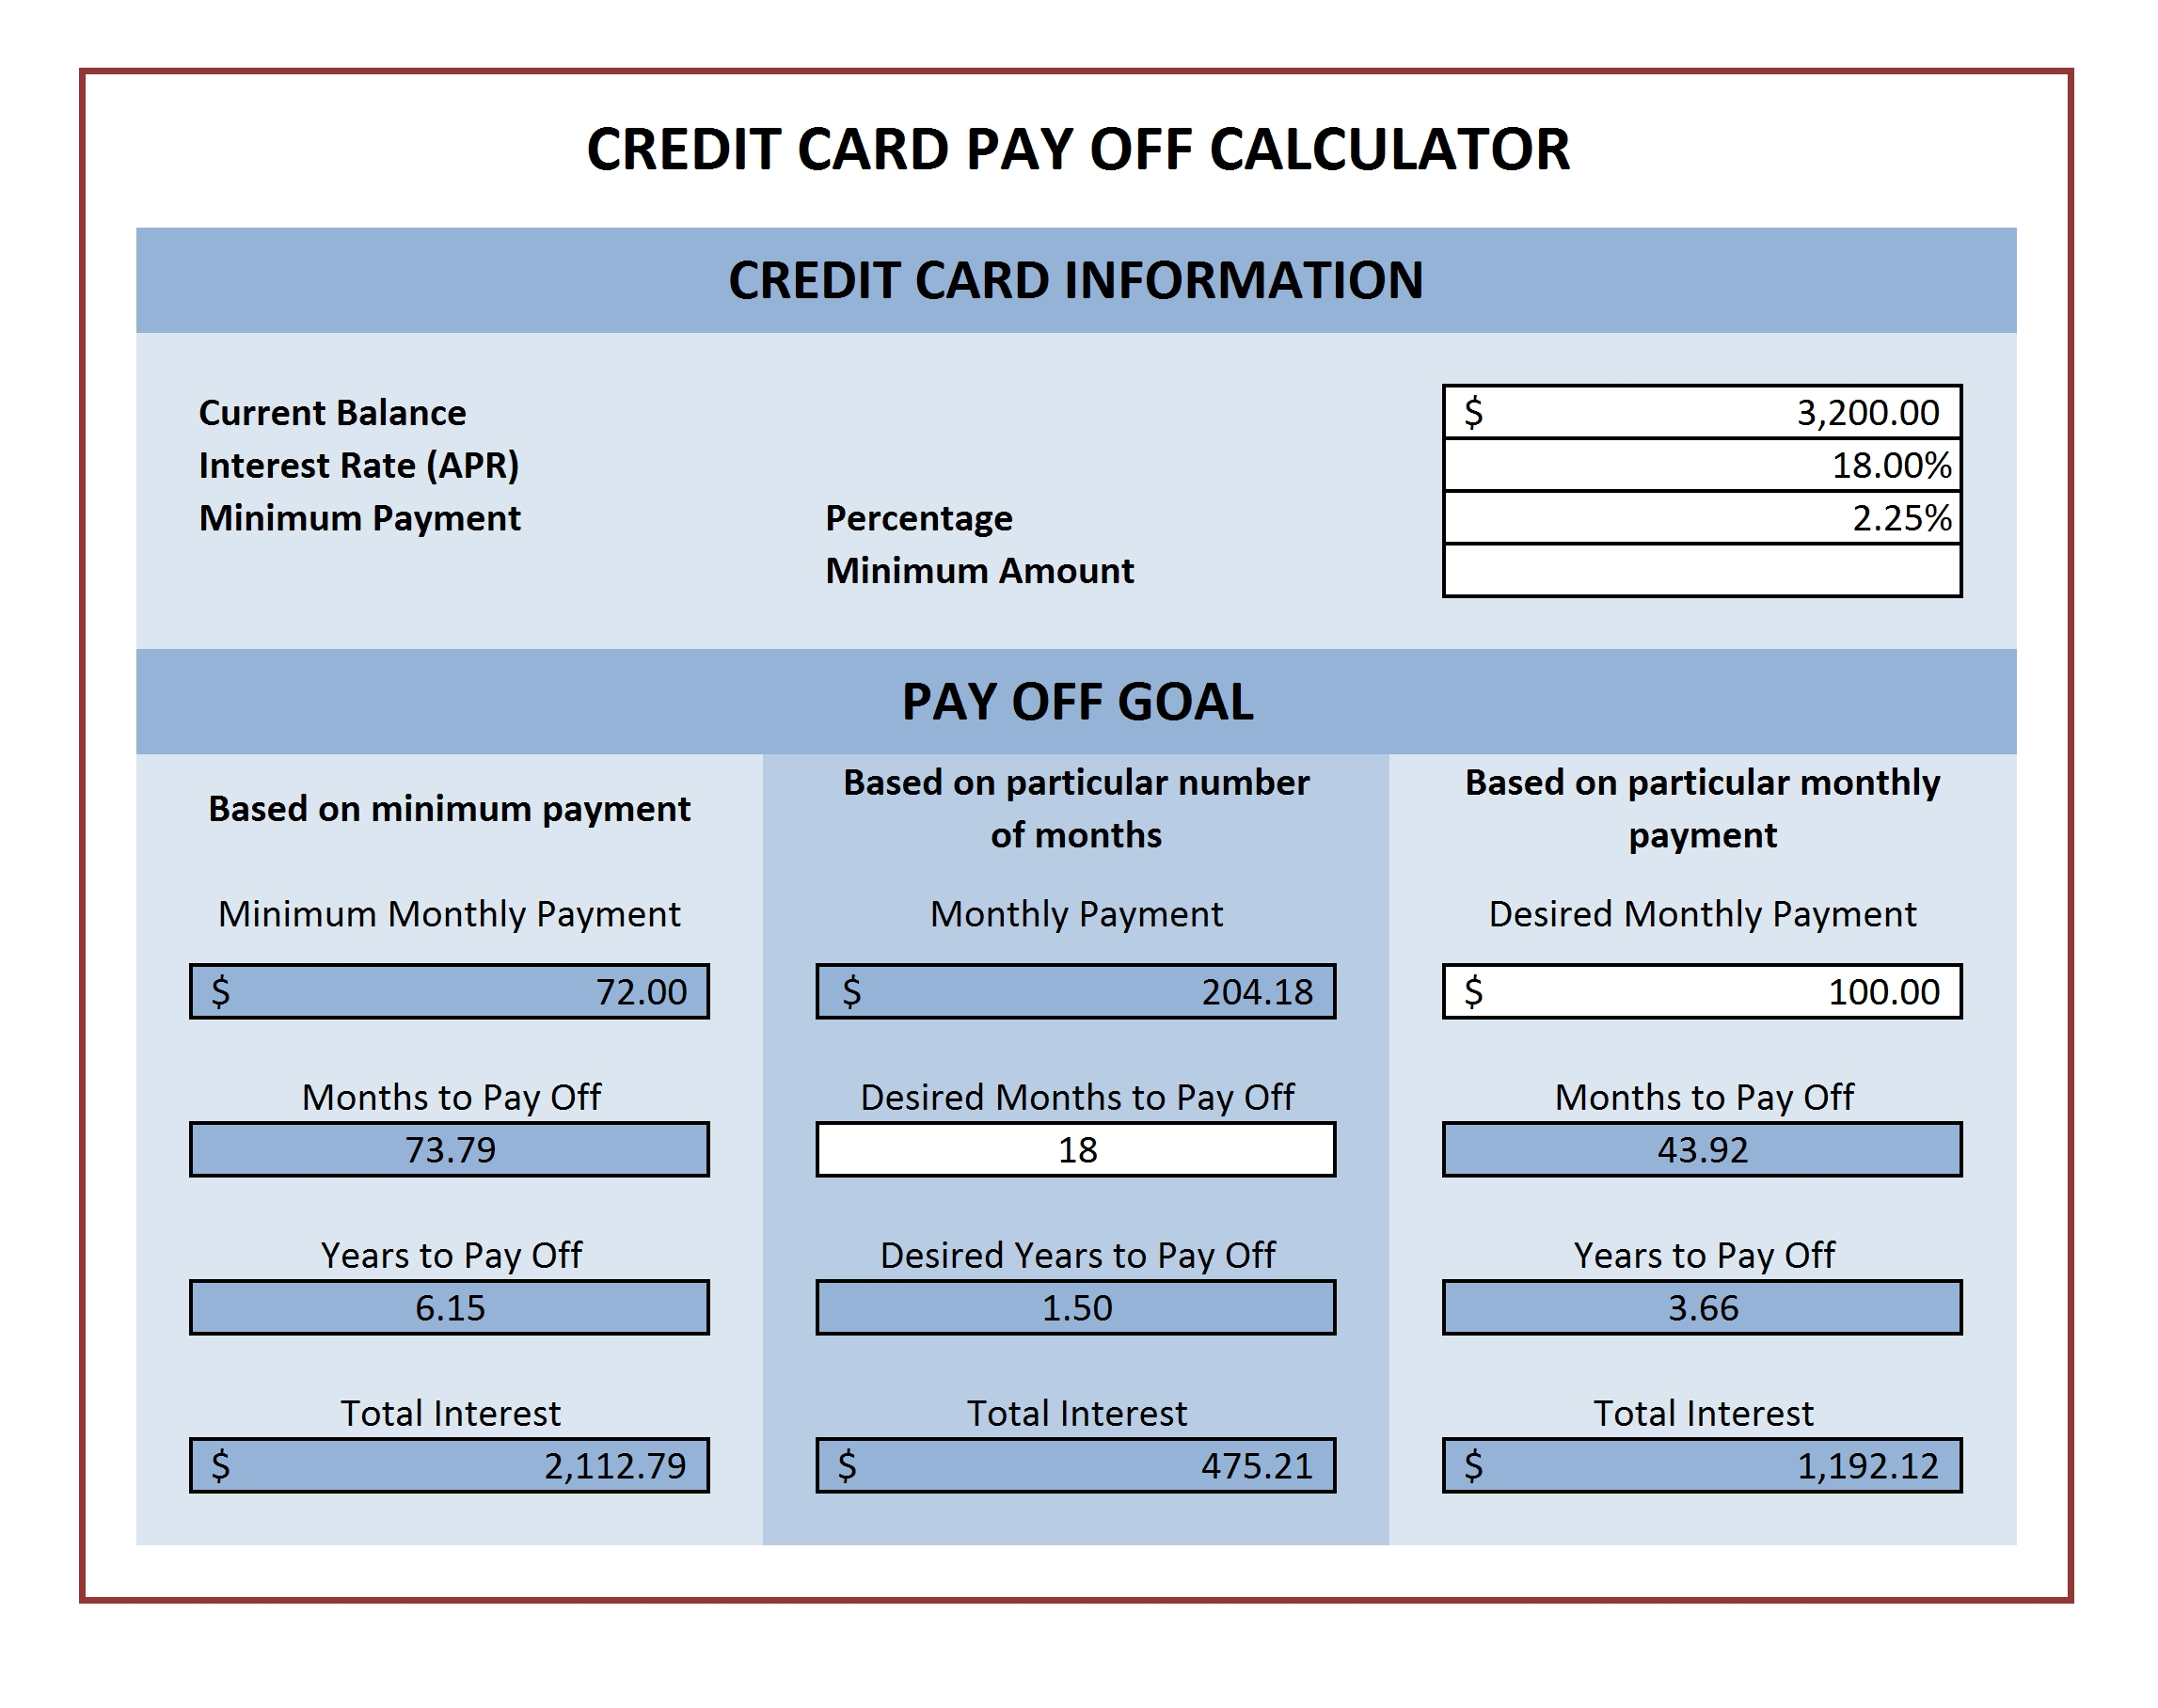 amortization schedule with extra principal payments